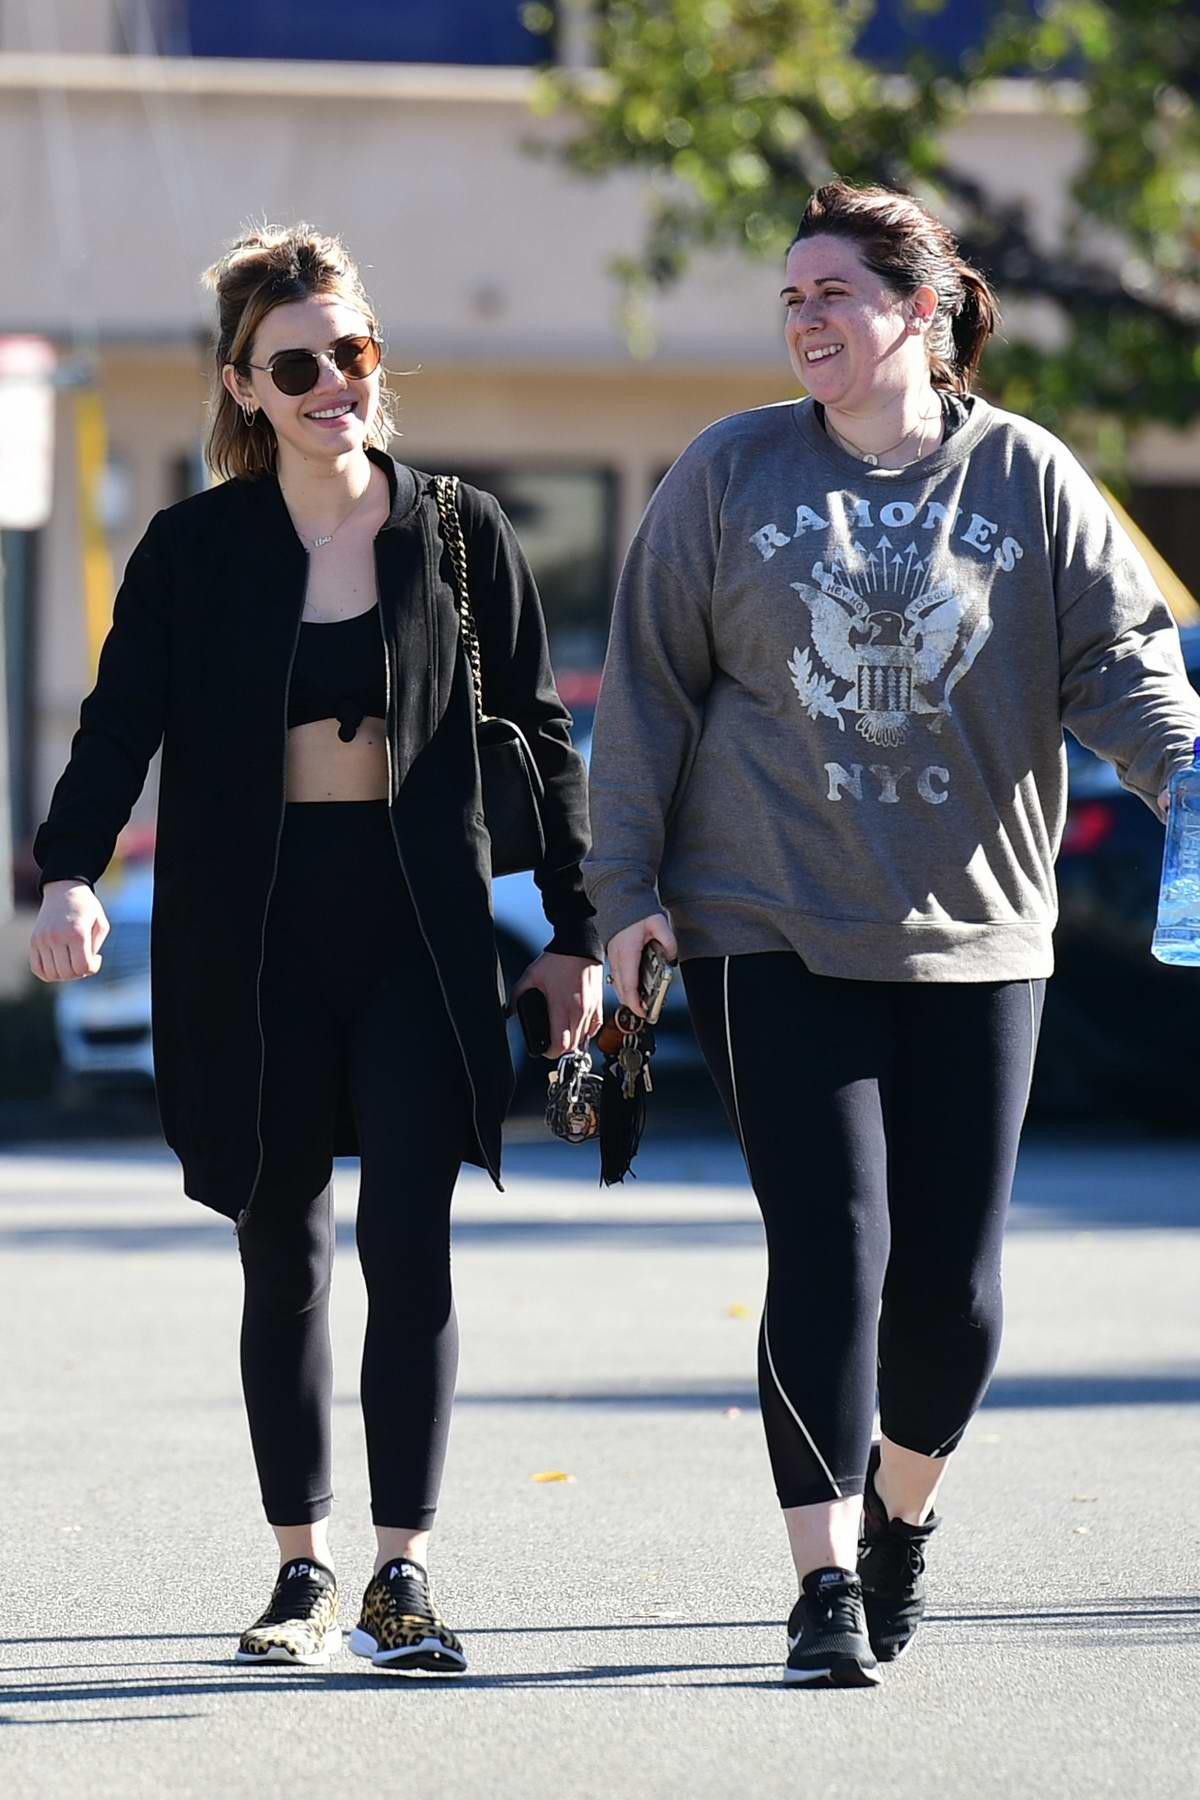 Lucy Hale leaves the gym with a friend after a workout session in Los Angeles